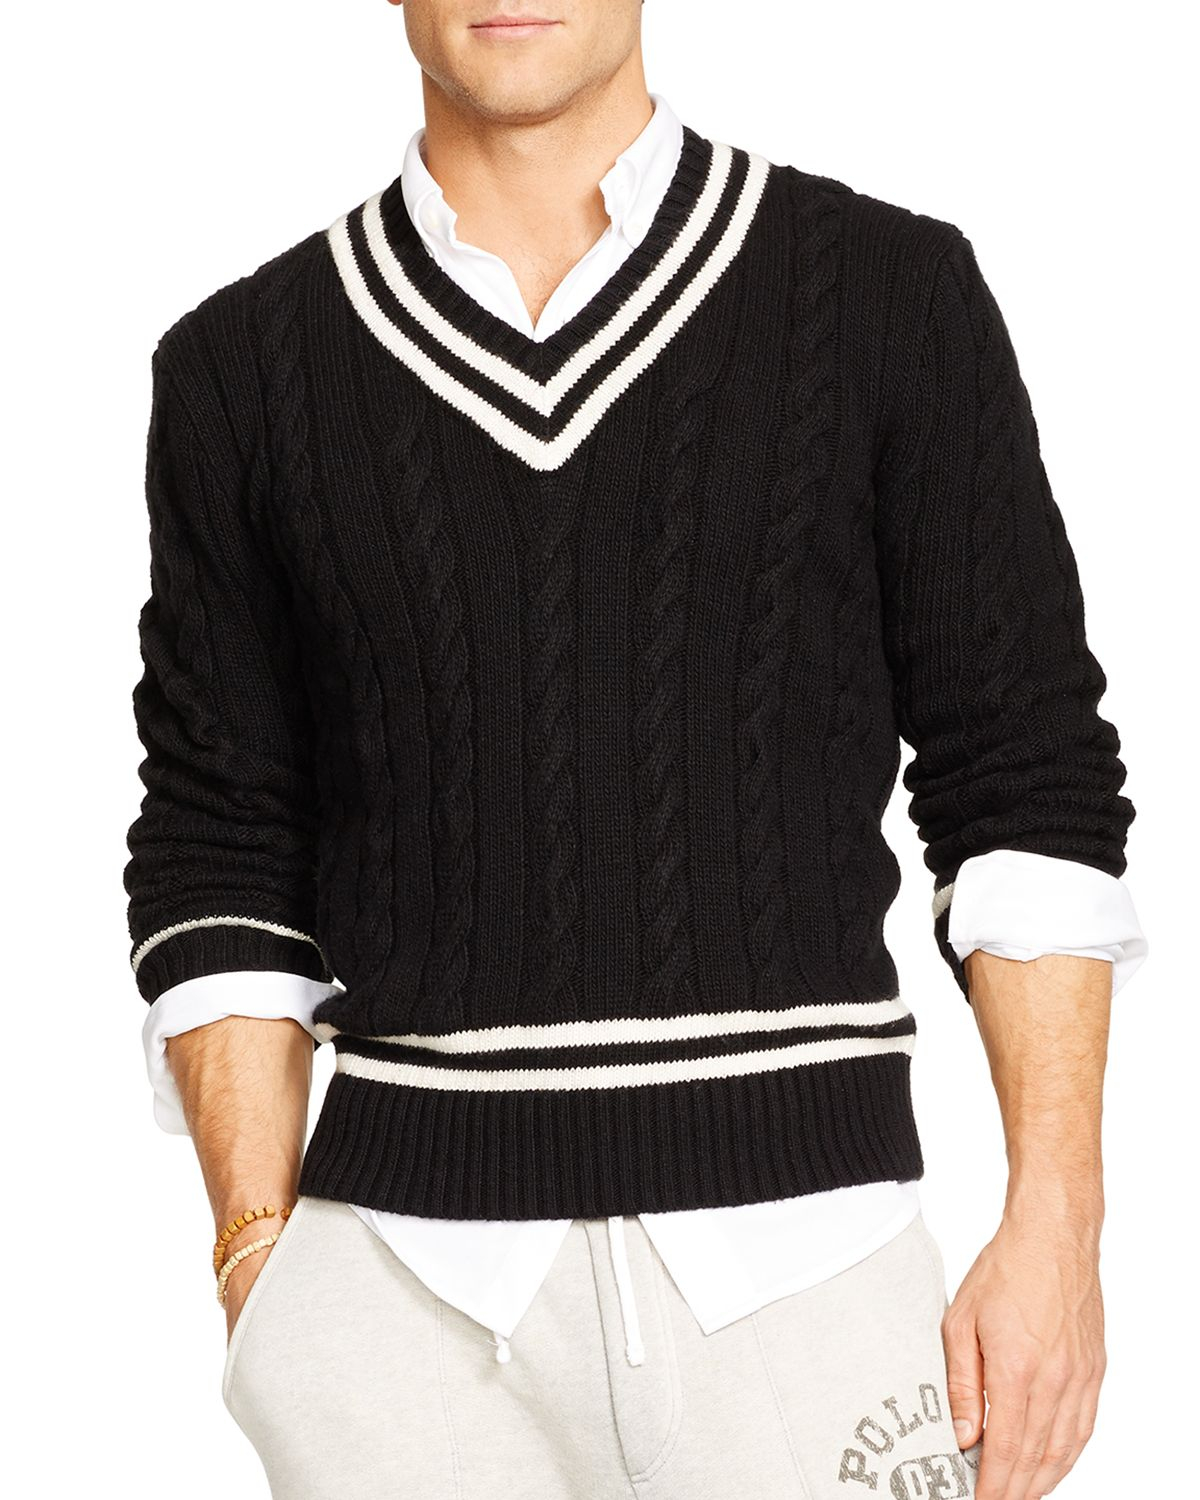 6b8bd1f5542 Ralph Lauren Polo Cable-Knit Cricket Sweater in Black for Men - Lyst